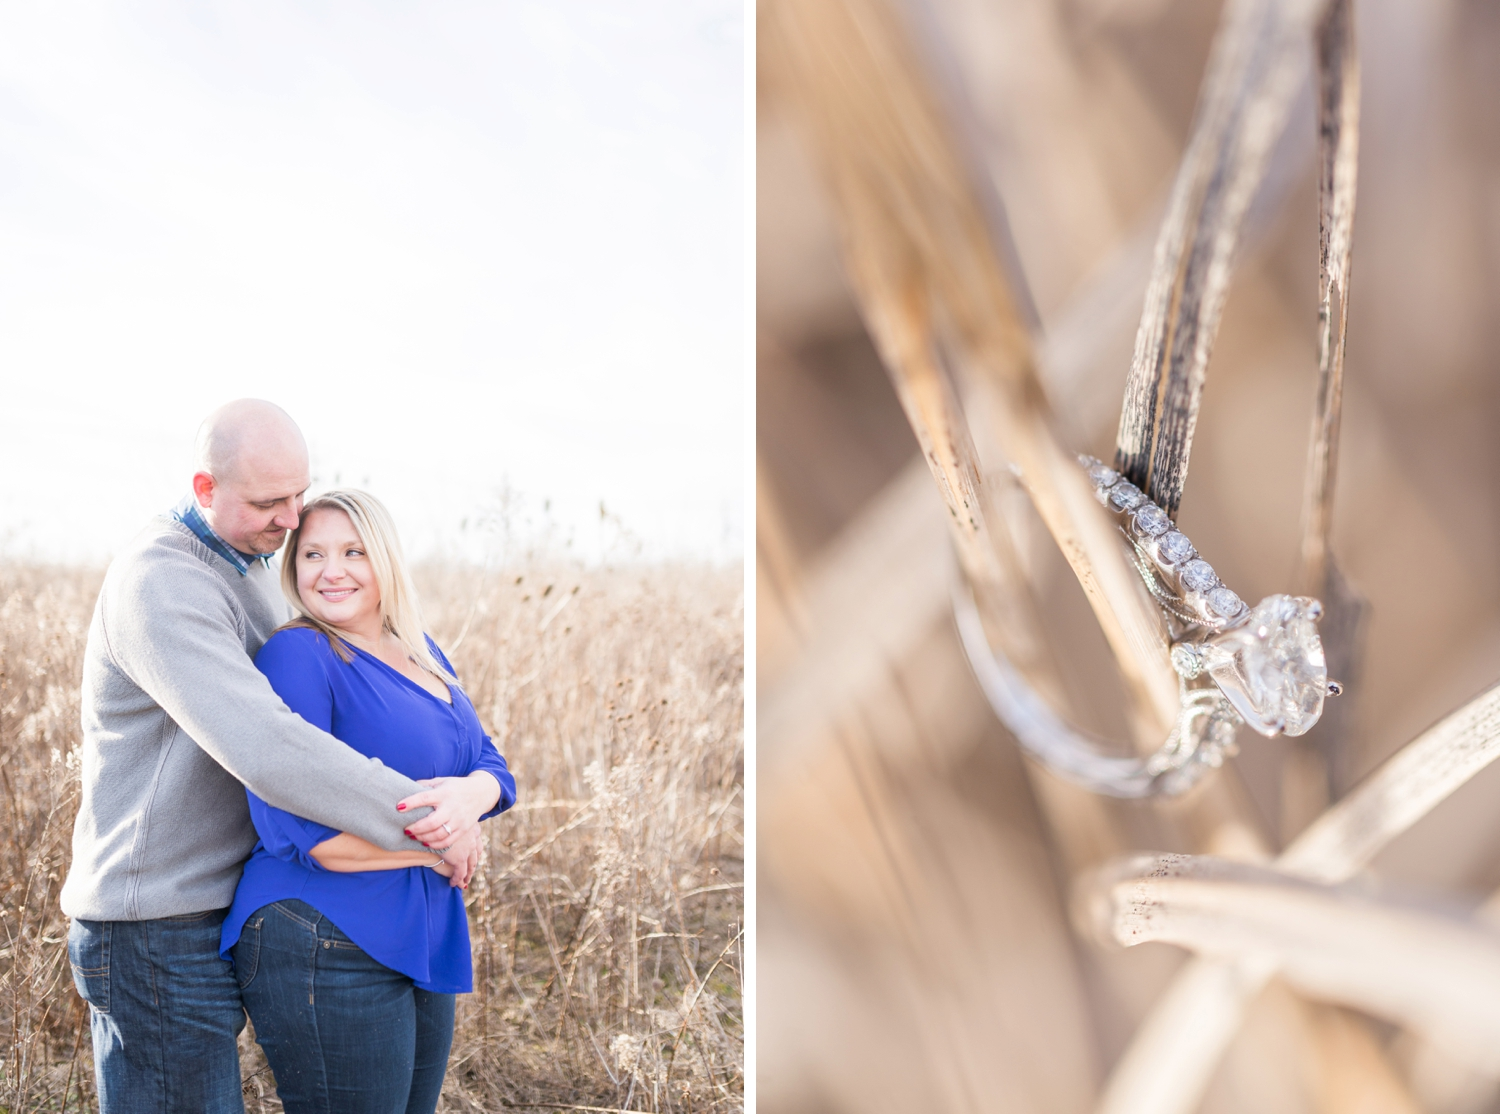 winter-engaged-couple-at-their-photo-session-at-the-scioto-audubon-park-near-grange-audubon-center-with-walkways-and-grass_0324